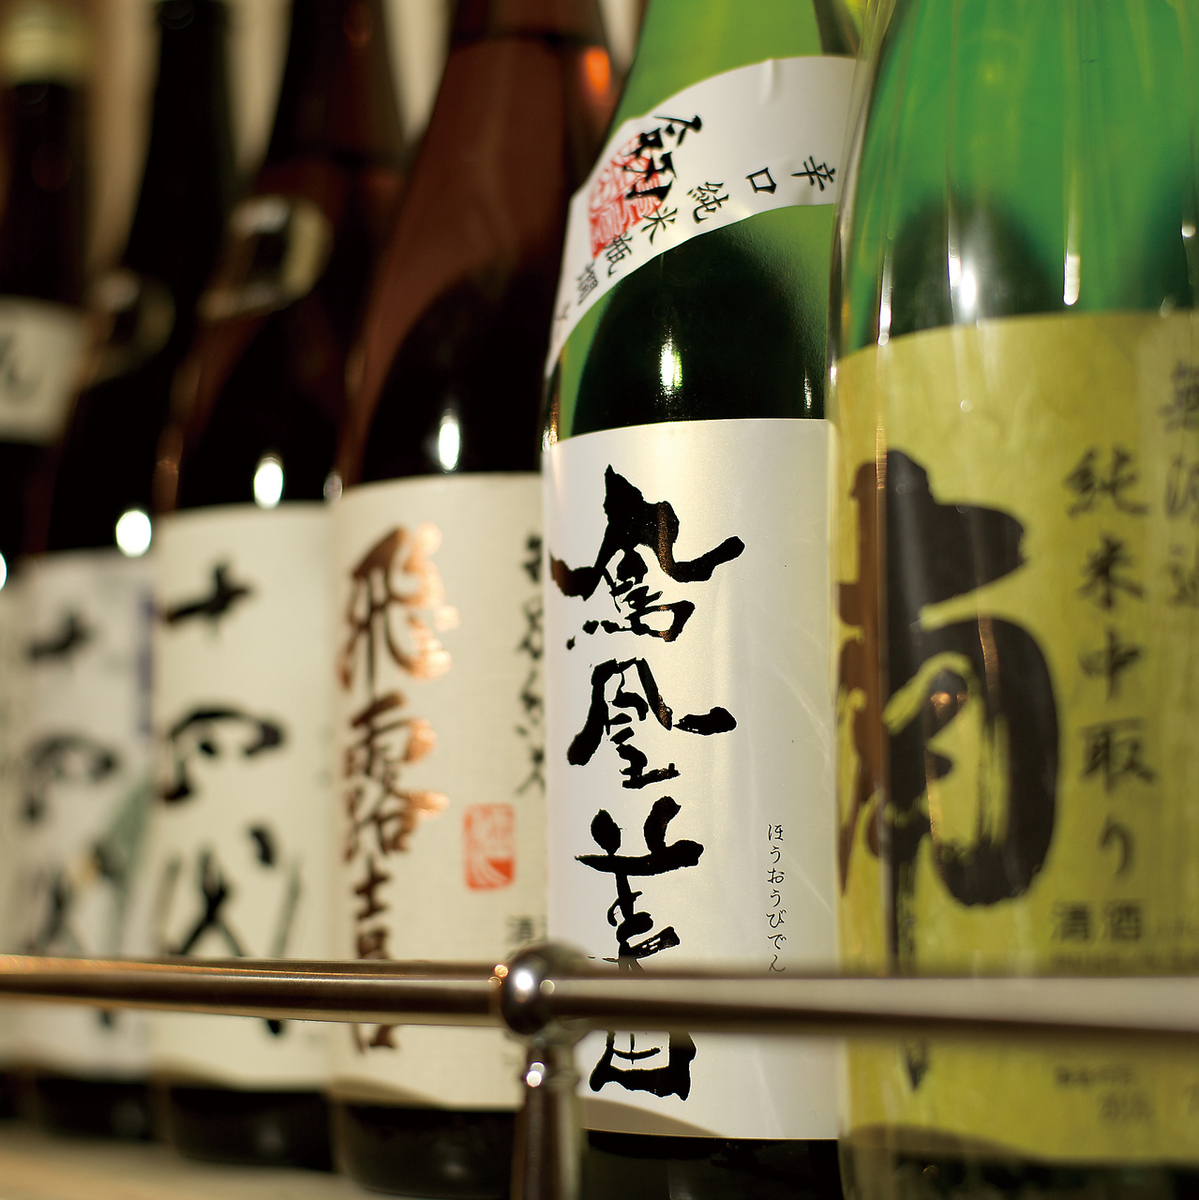 A toast with sake at night!